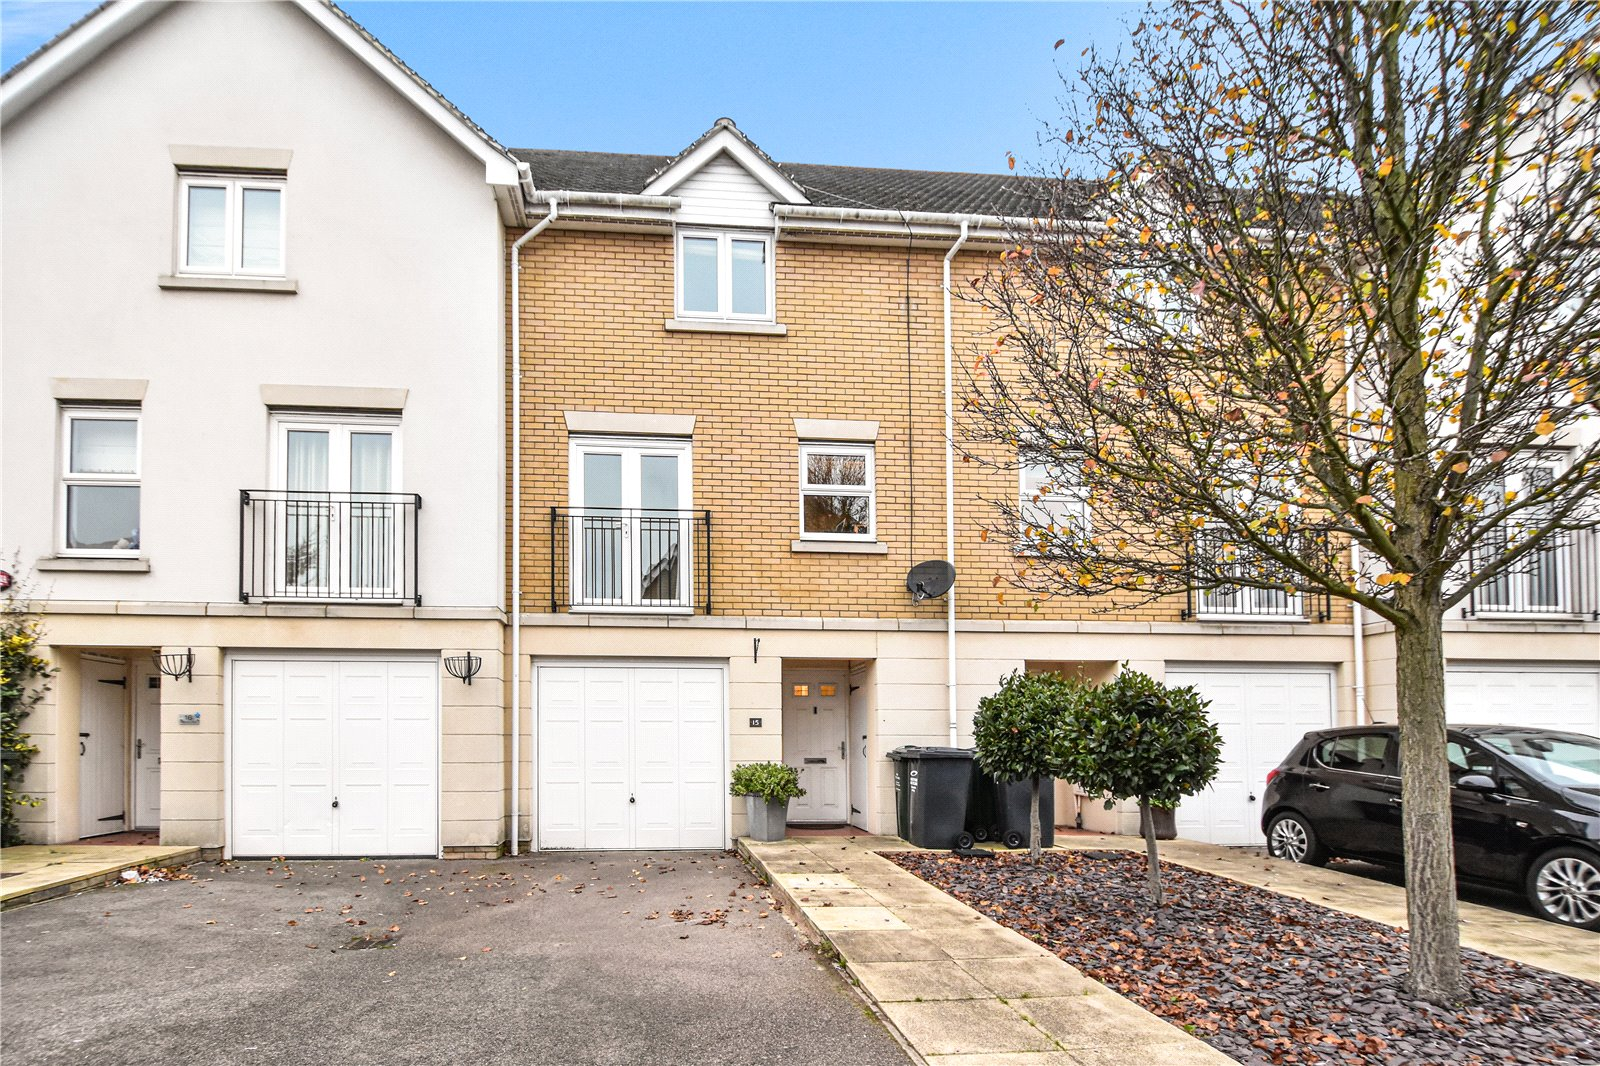 Gibbons Lane, West Dartford, Dartford, Kent, DA1